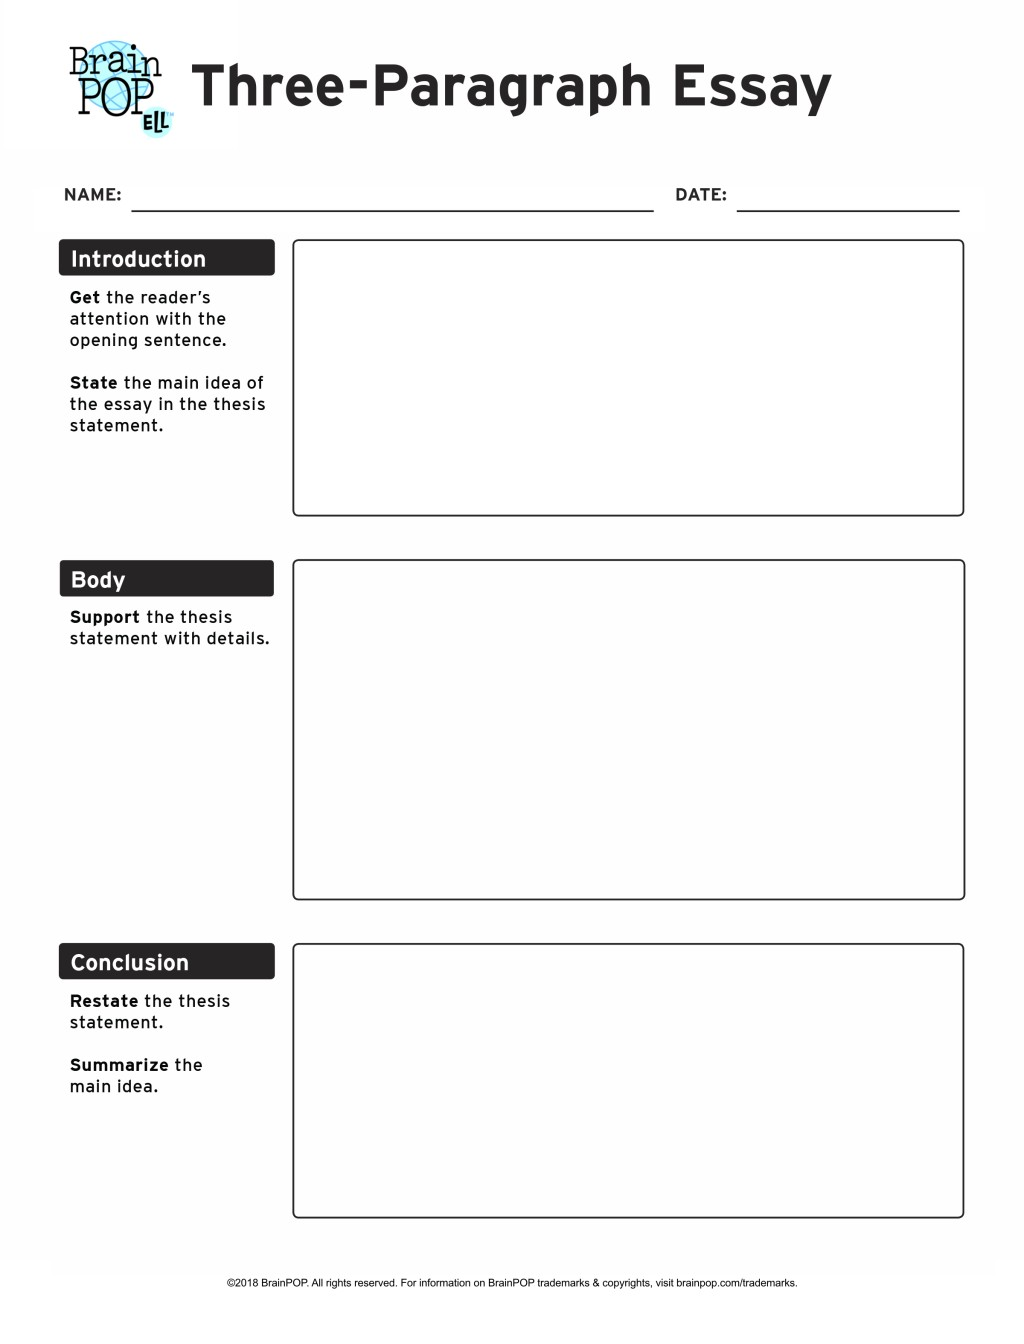 018 Compare And Contrast Essay Graphic Organizer Three Paragraph Wondrous Middle School Large